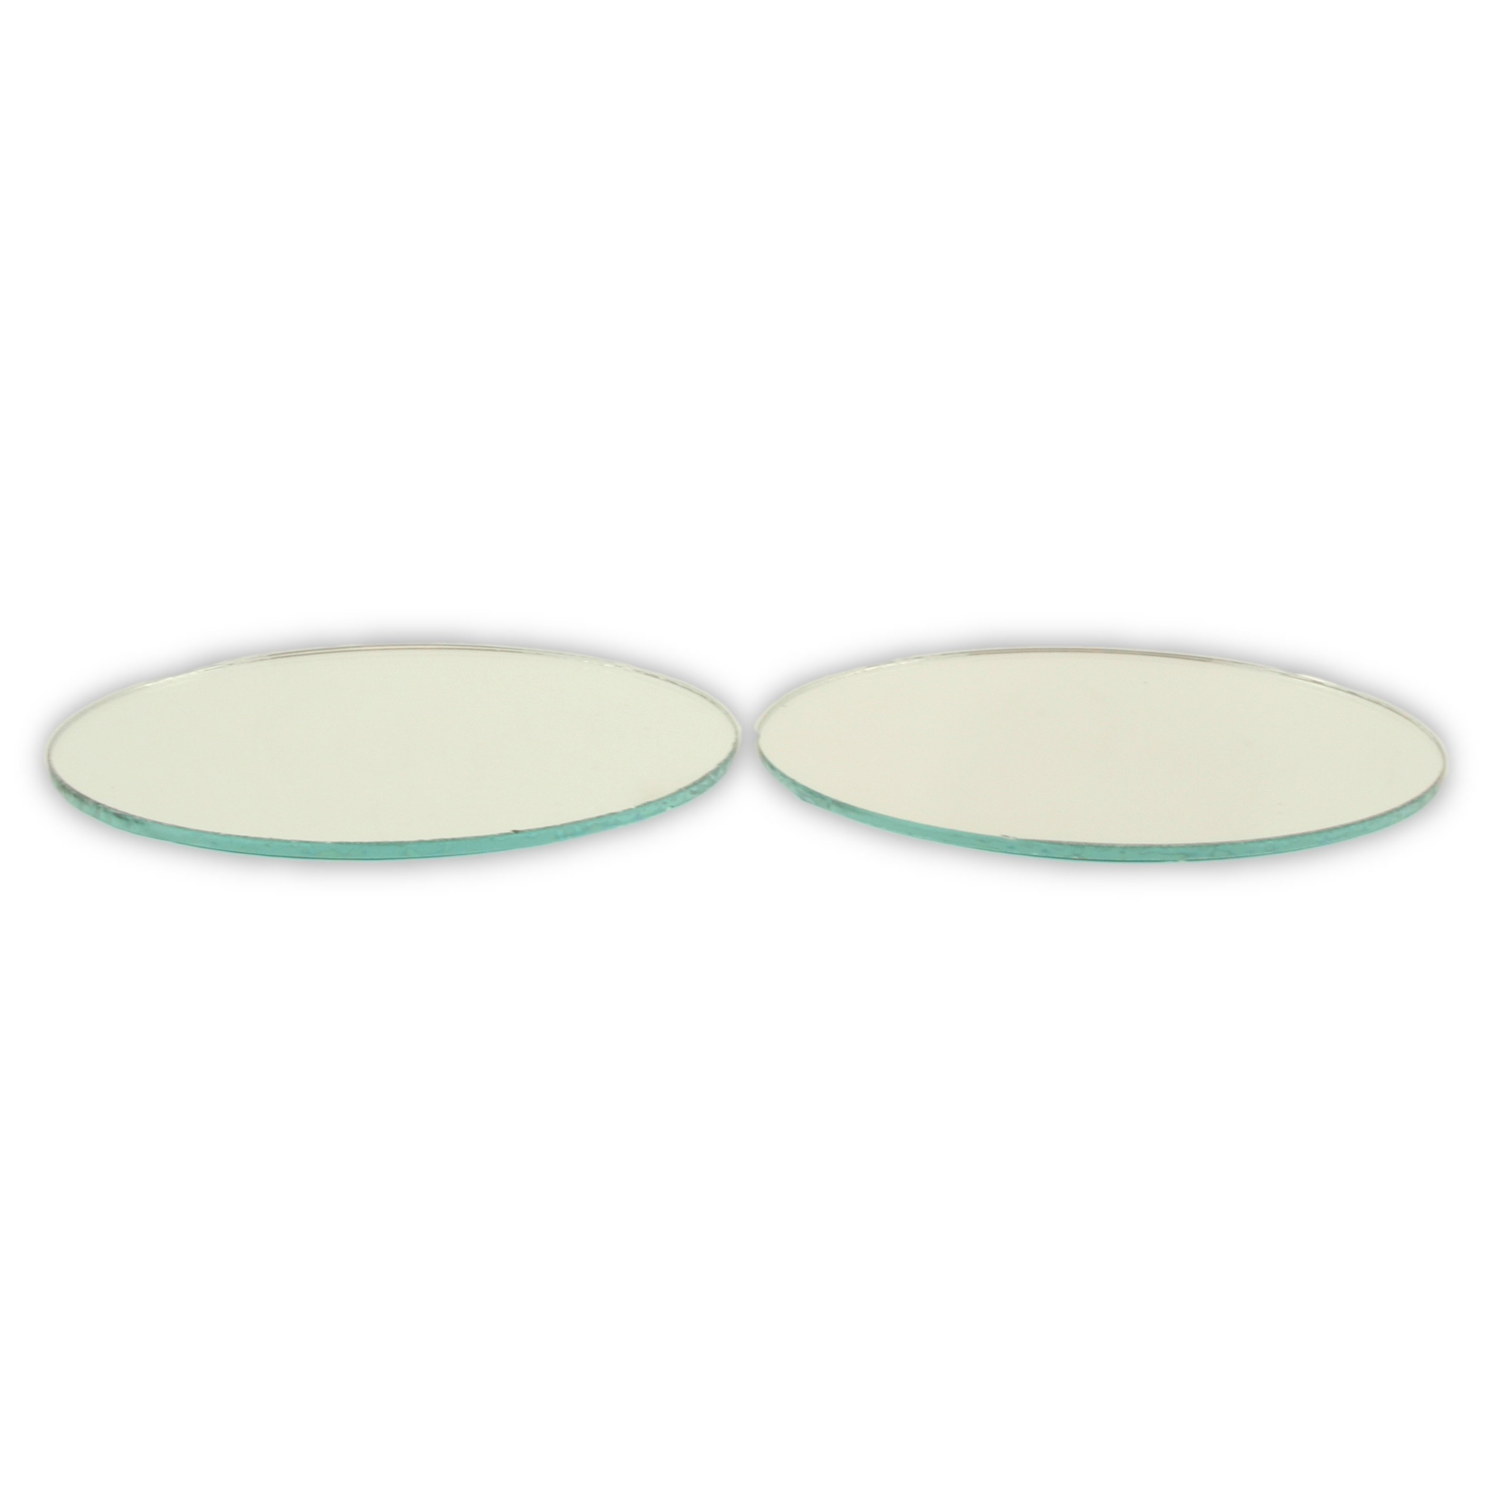 Small Mirror Pieces: 3 Inch Small Round Craft Mirrors Bulk 18 Pieces Also